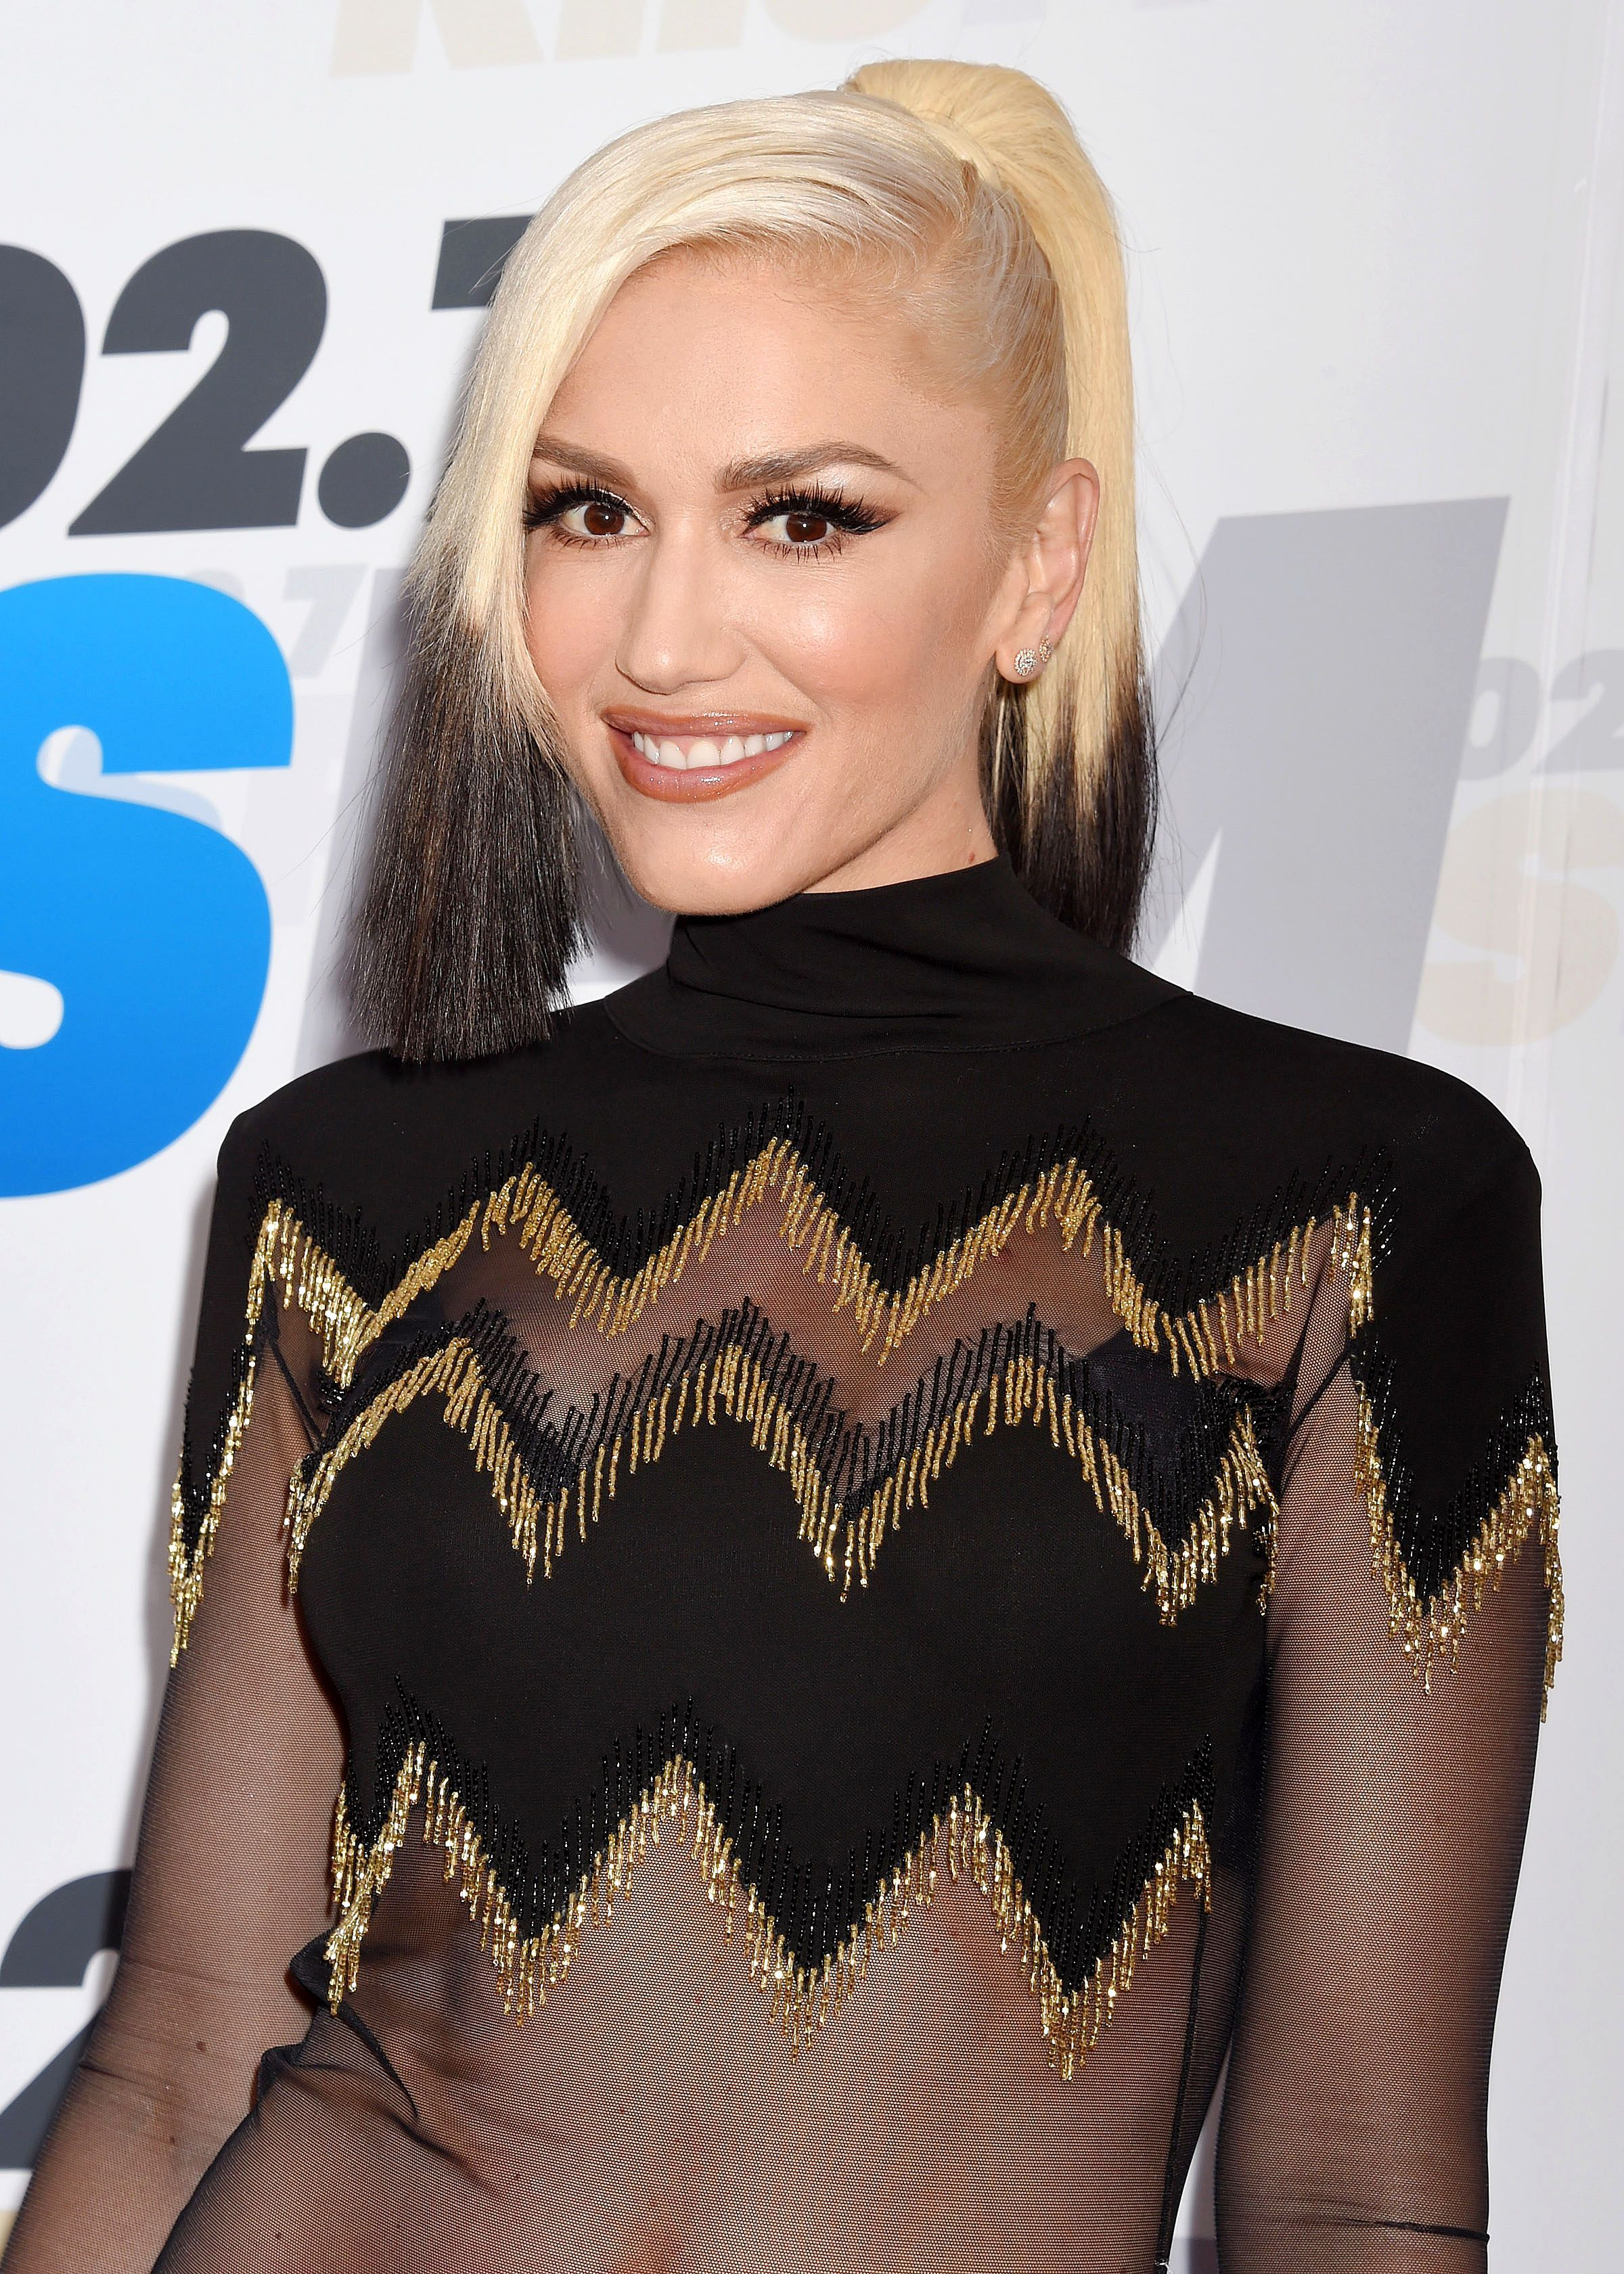 Gwen Stefani's been getting her roots done weekly for two decades